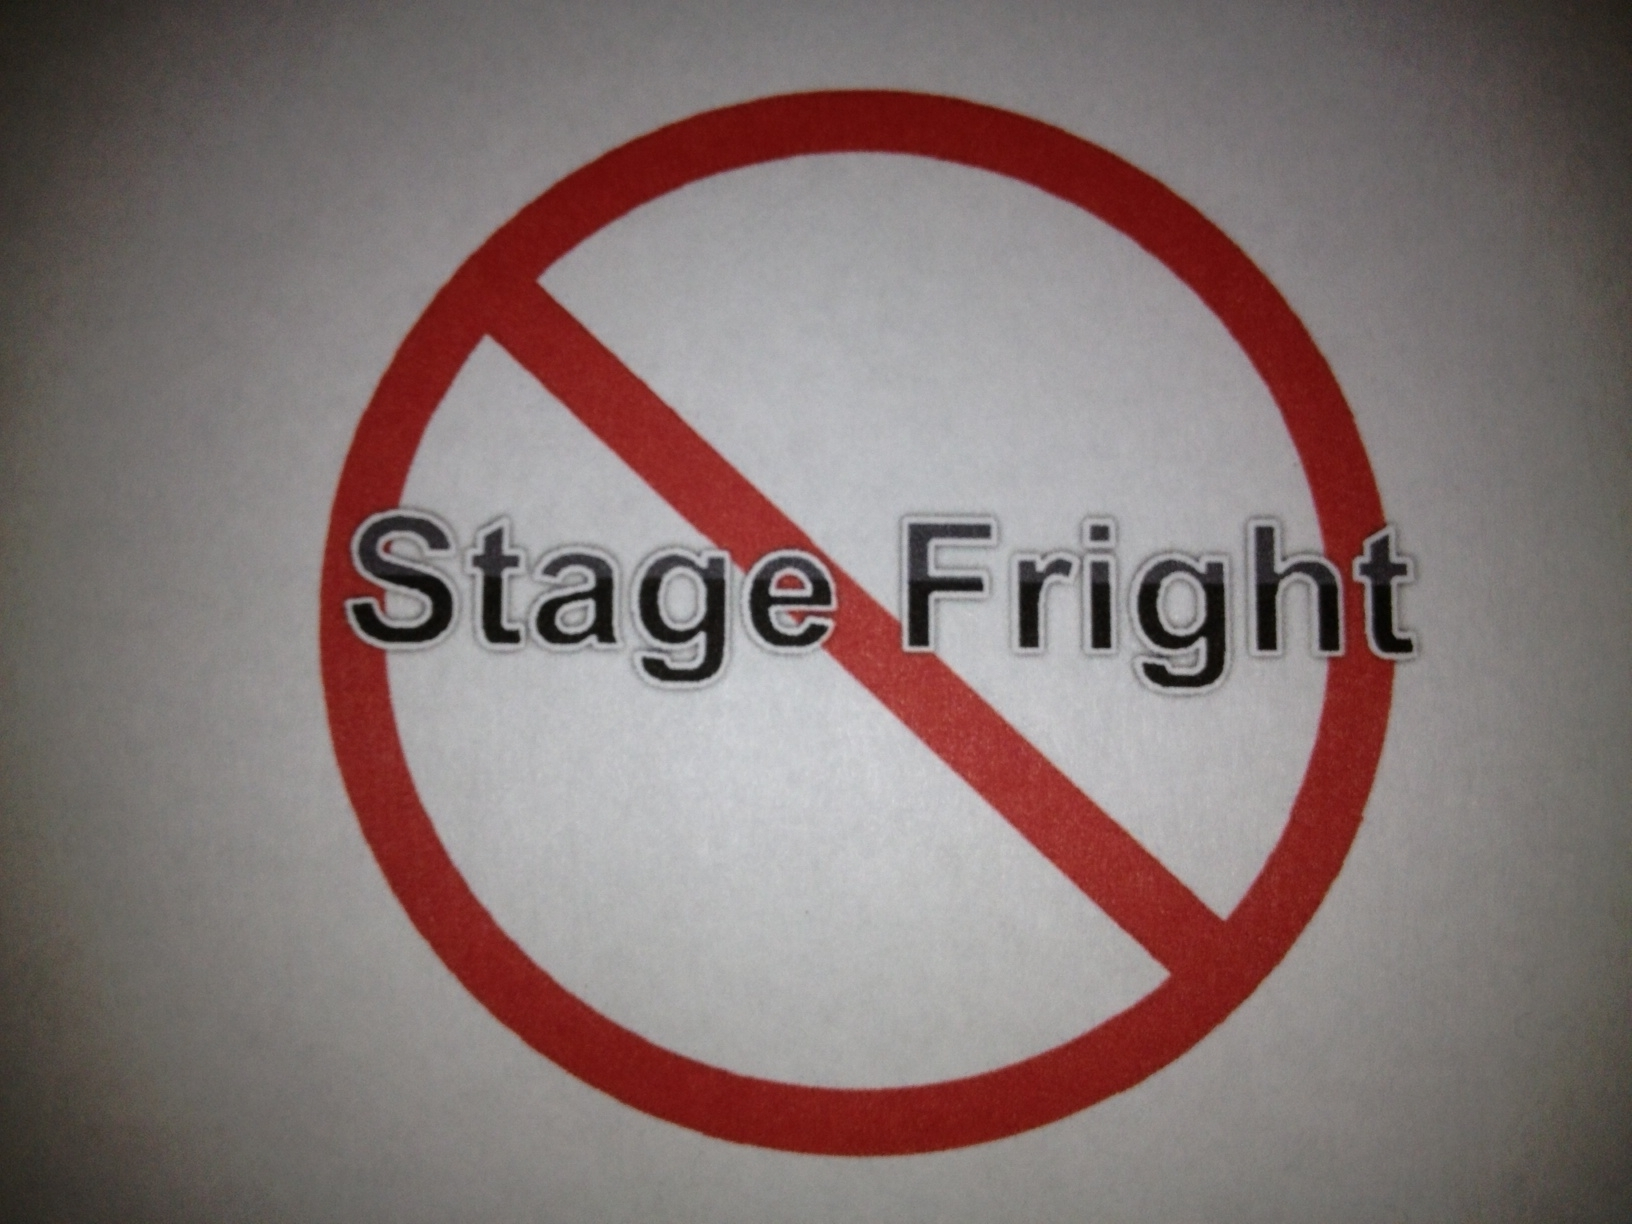 stage fright logo